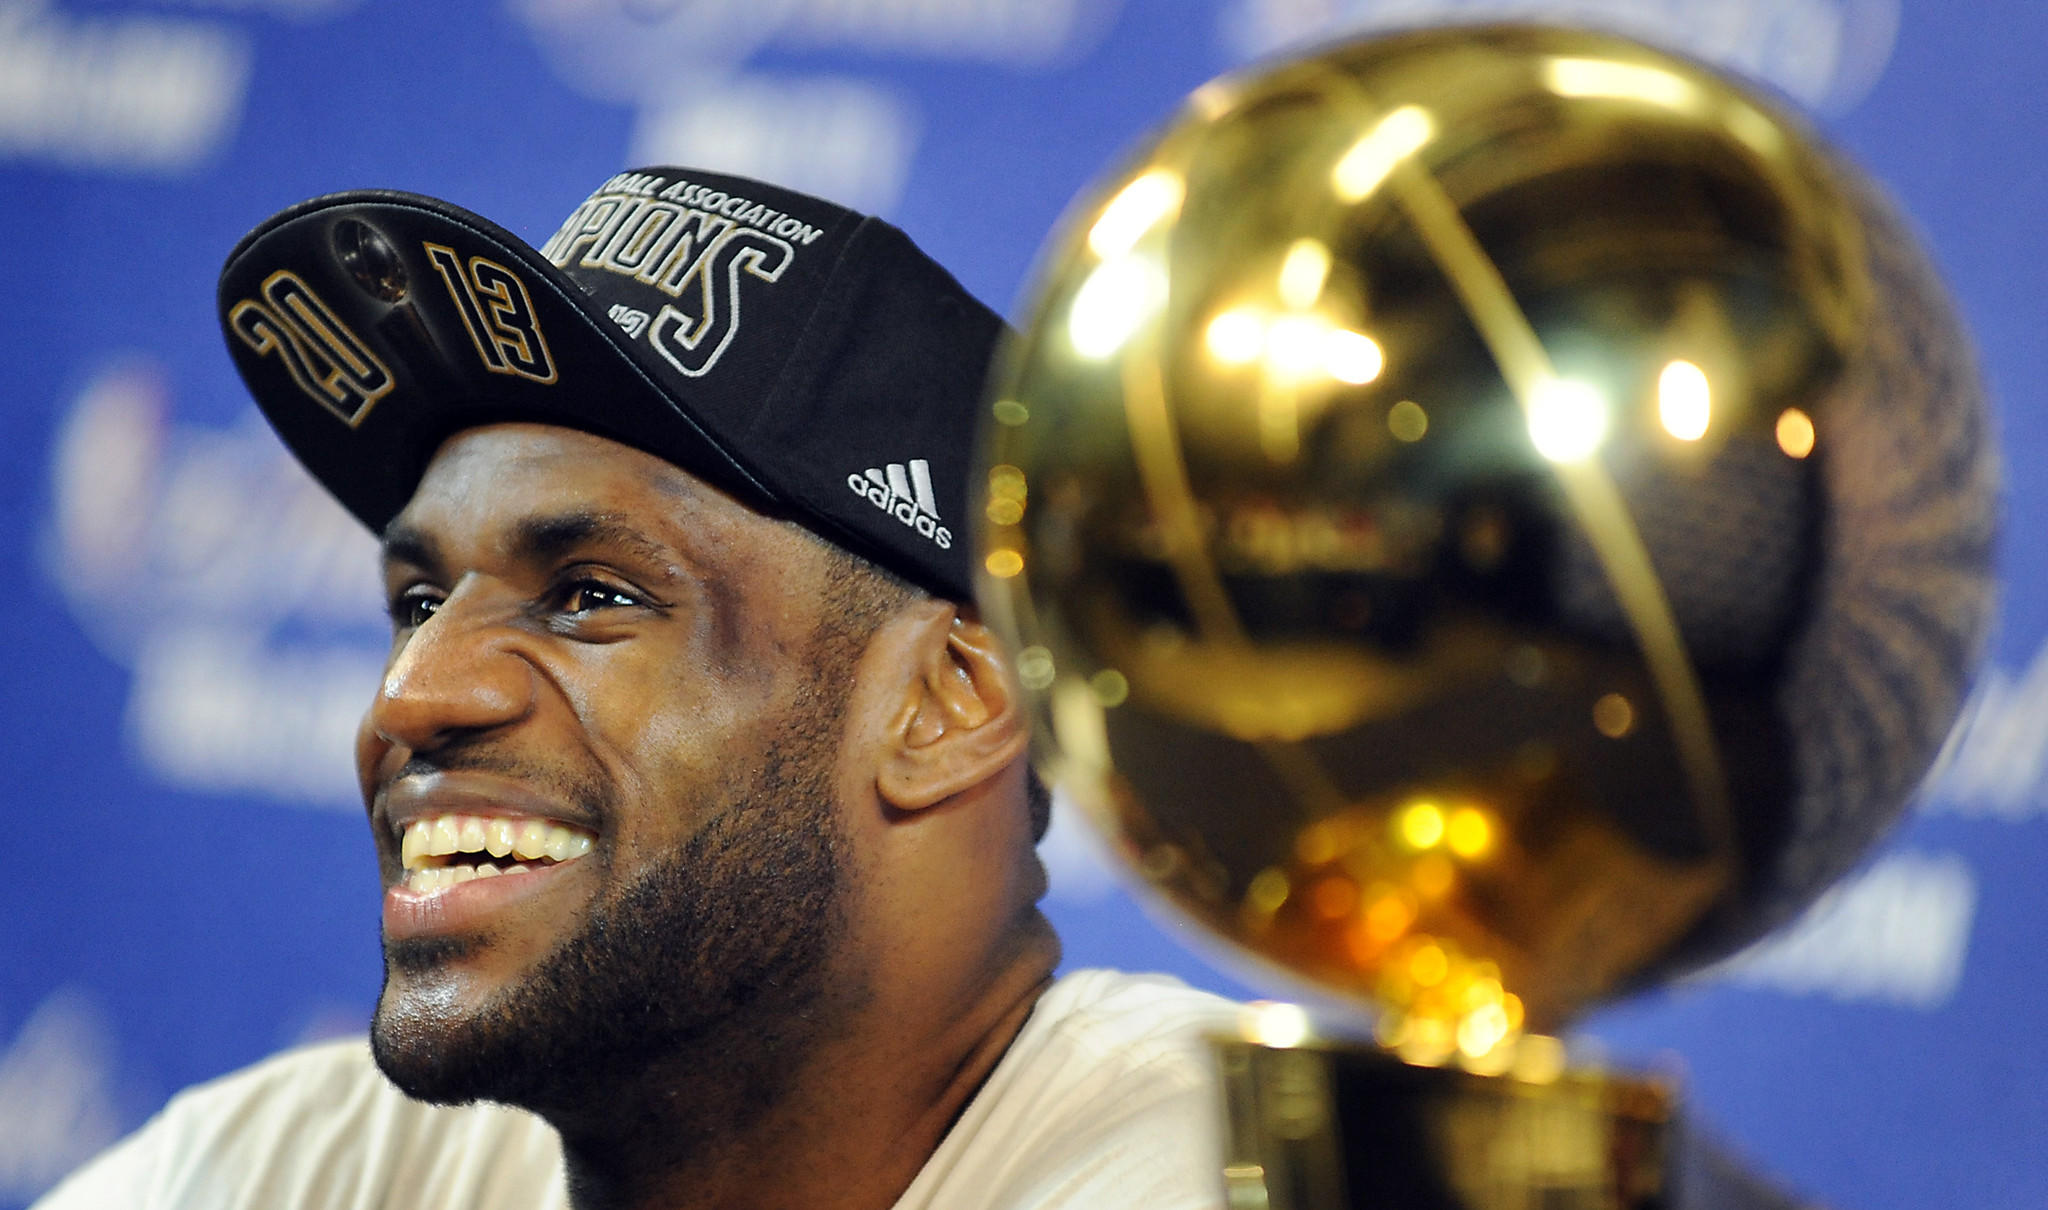 LeBron James smiles big during his post game press conference.